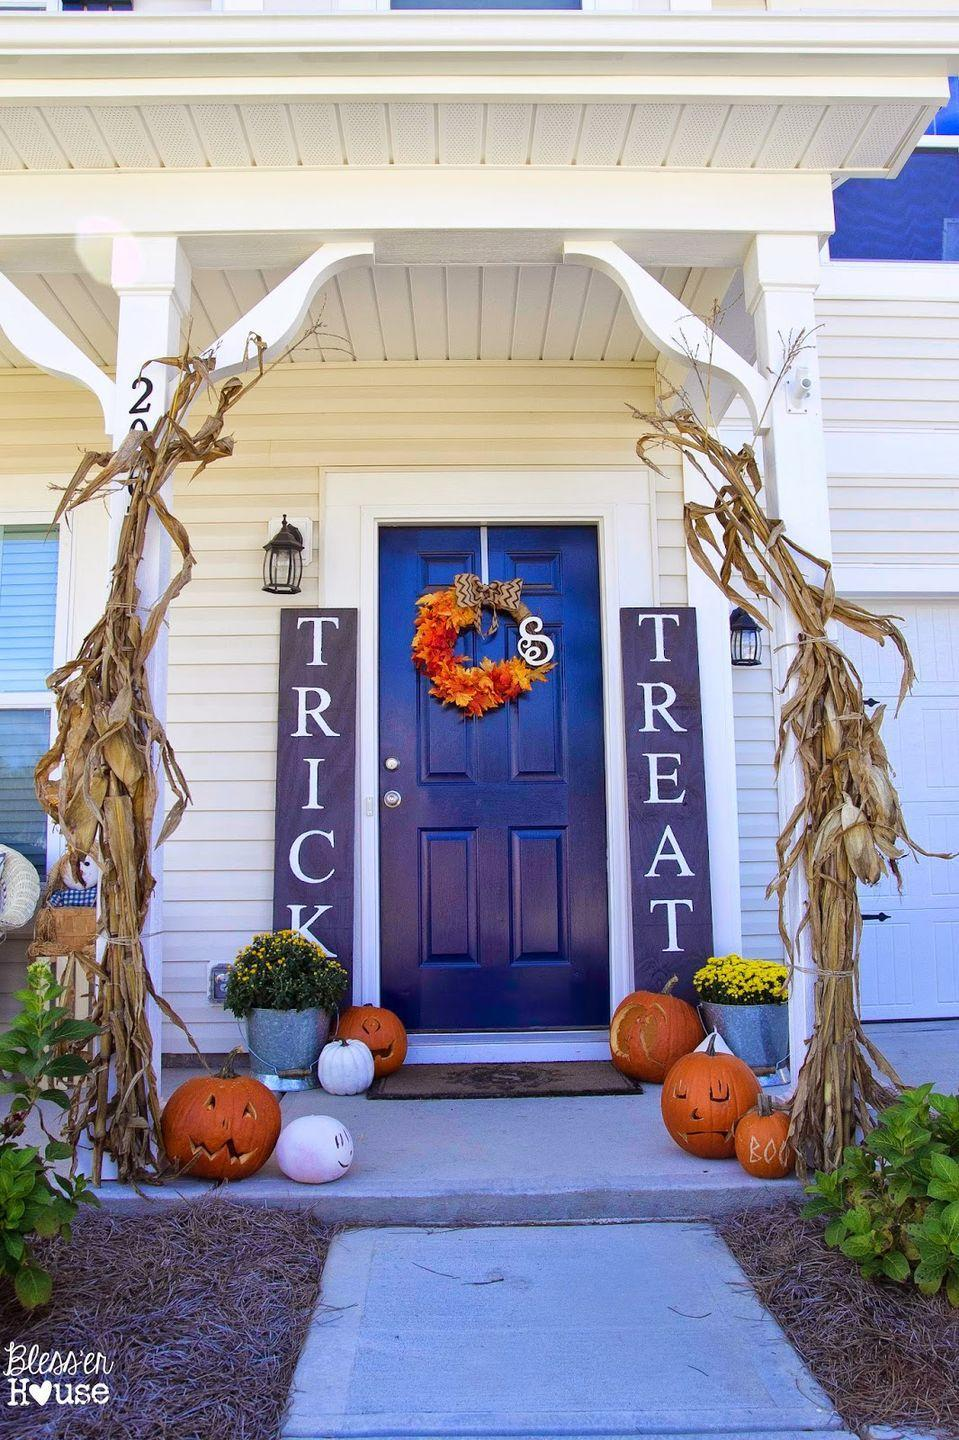 """<p>Welcome trick-or-treaters with these sweet signs.</p><p><strong>Get the tutorial at <a href=""""https://www.blesserhouse.com/diy-halloween-sidelight-signs-and-fall/"""" rel=""""nofollow noopener"""" target=""""_blank"""" data-ylk=""""slk:Bless'er House"""" class=""""link rapid-noclick-resp"""">Bless'er House</a>.</strong> </p>"""